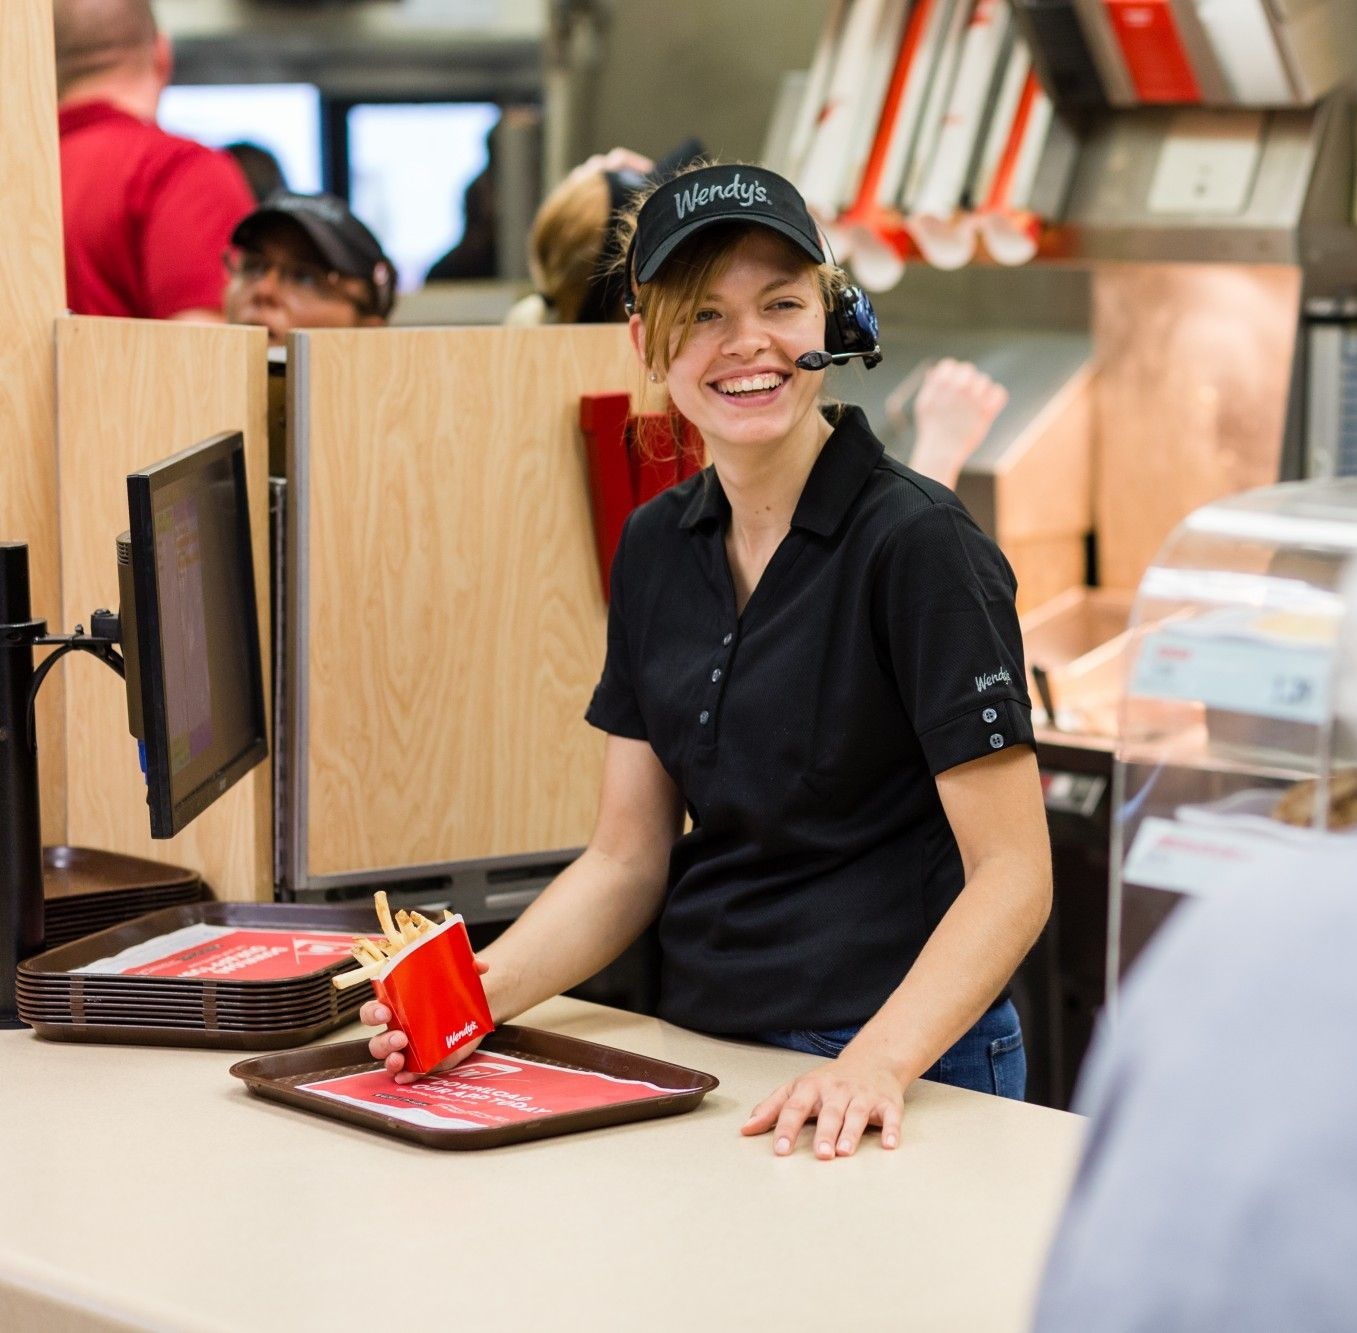 why wenco, community, employees, wendys, wenco